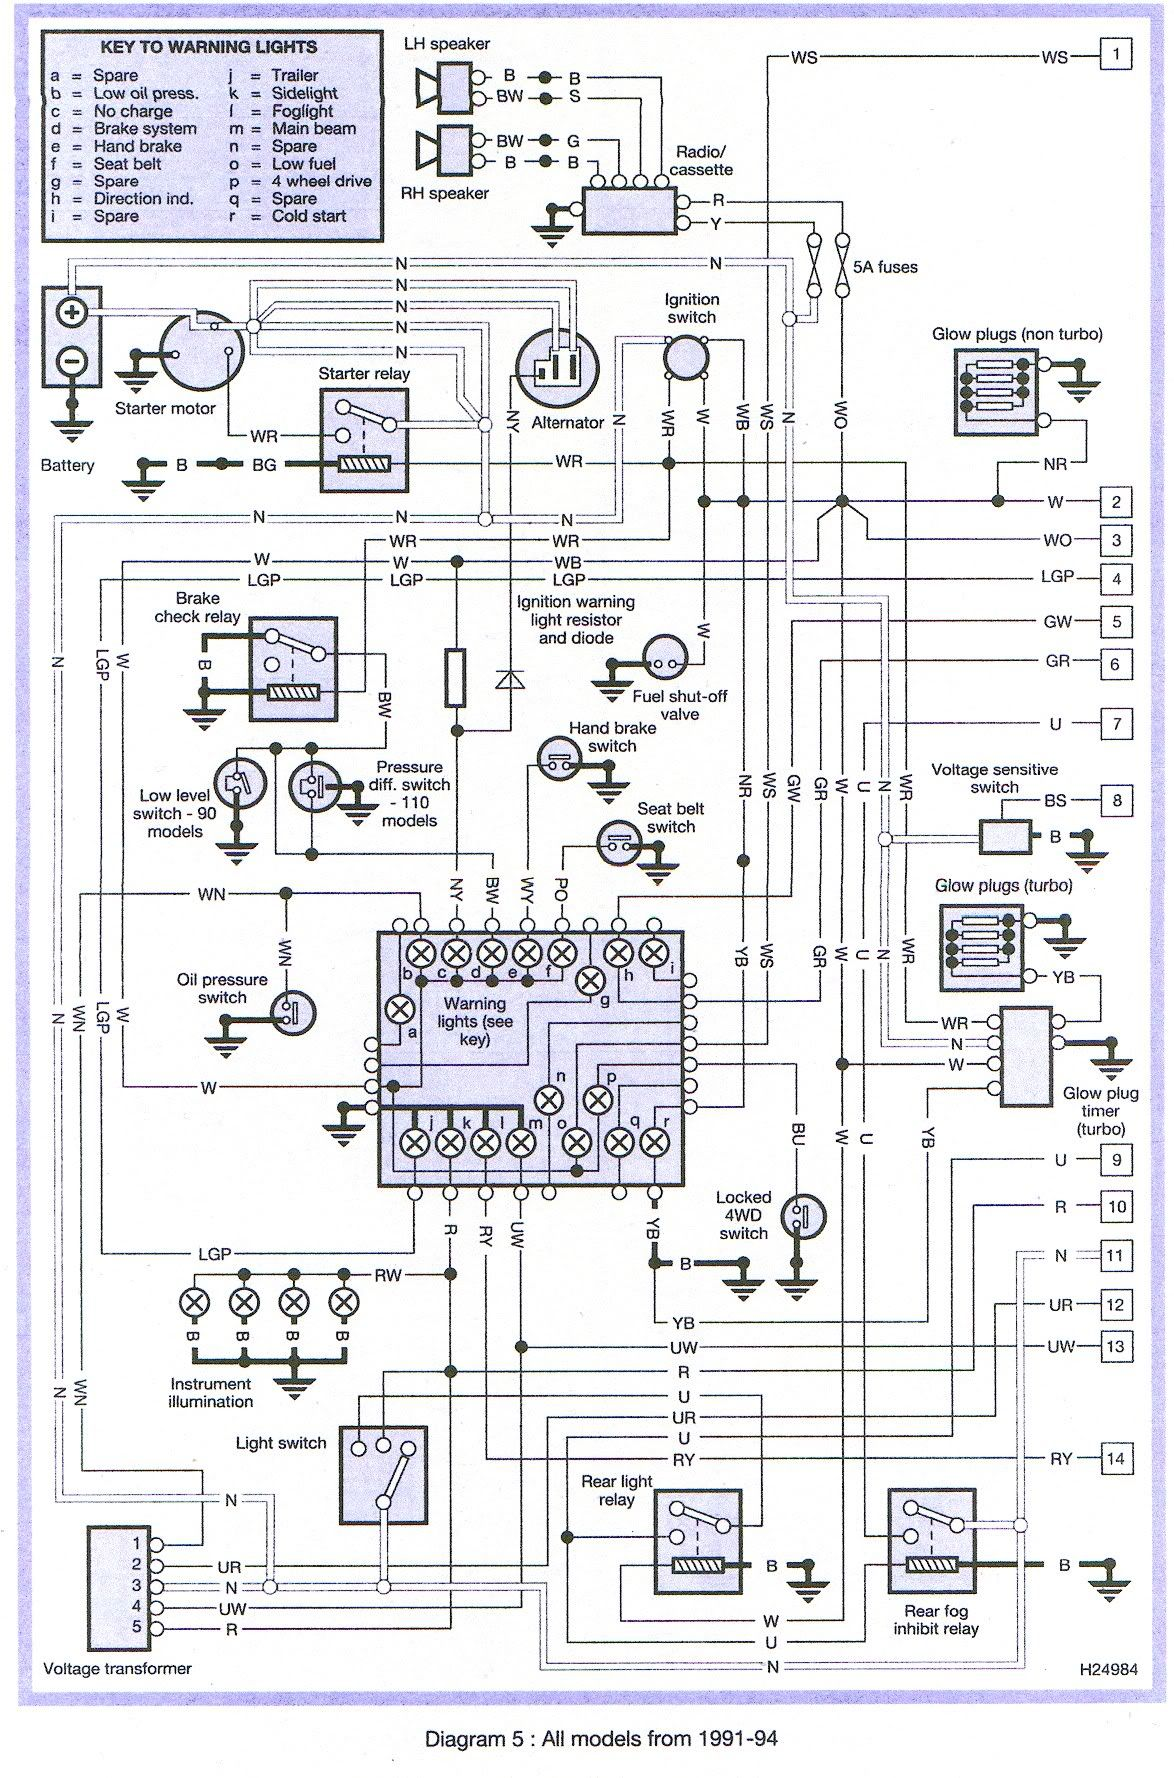 land rover discovery wiring diagram | manual repair with engine schematics  | land rover discovery, diagram, land rover  pinterest